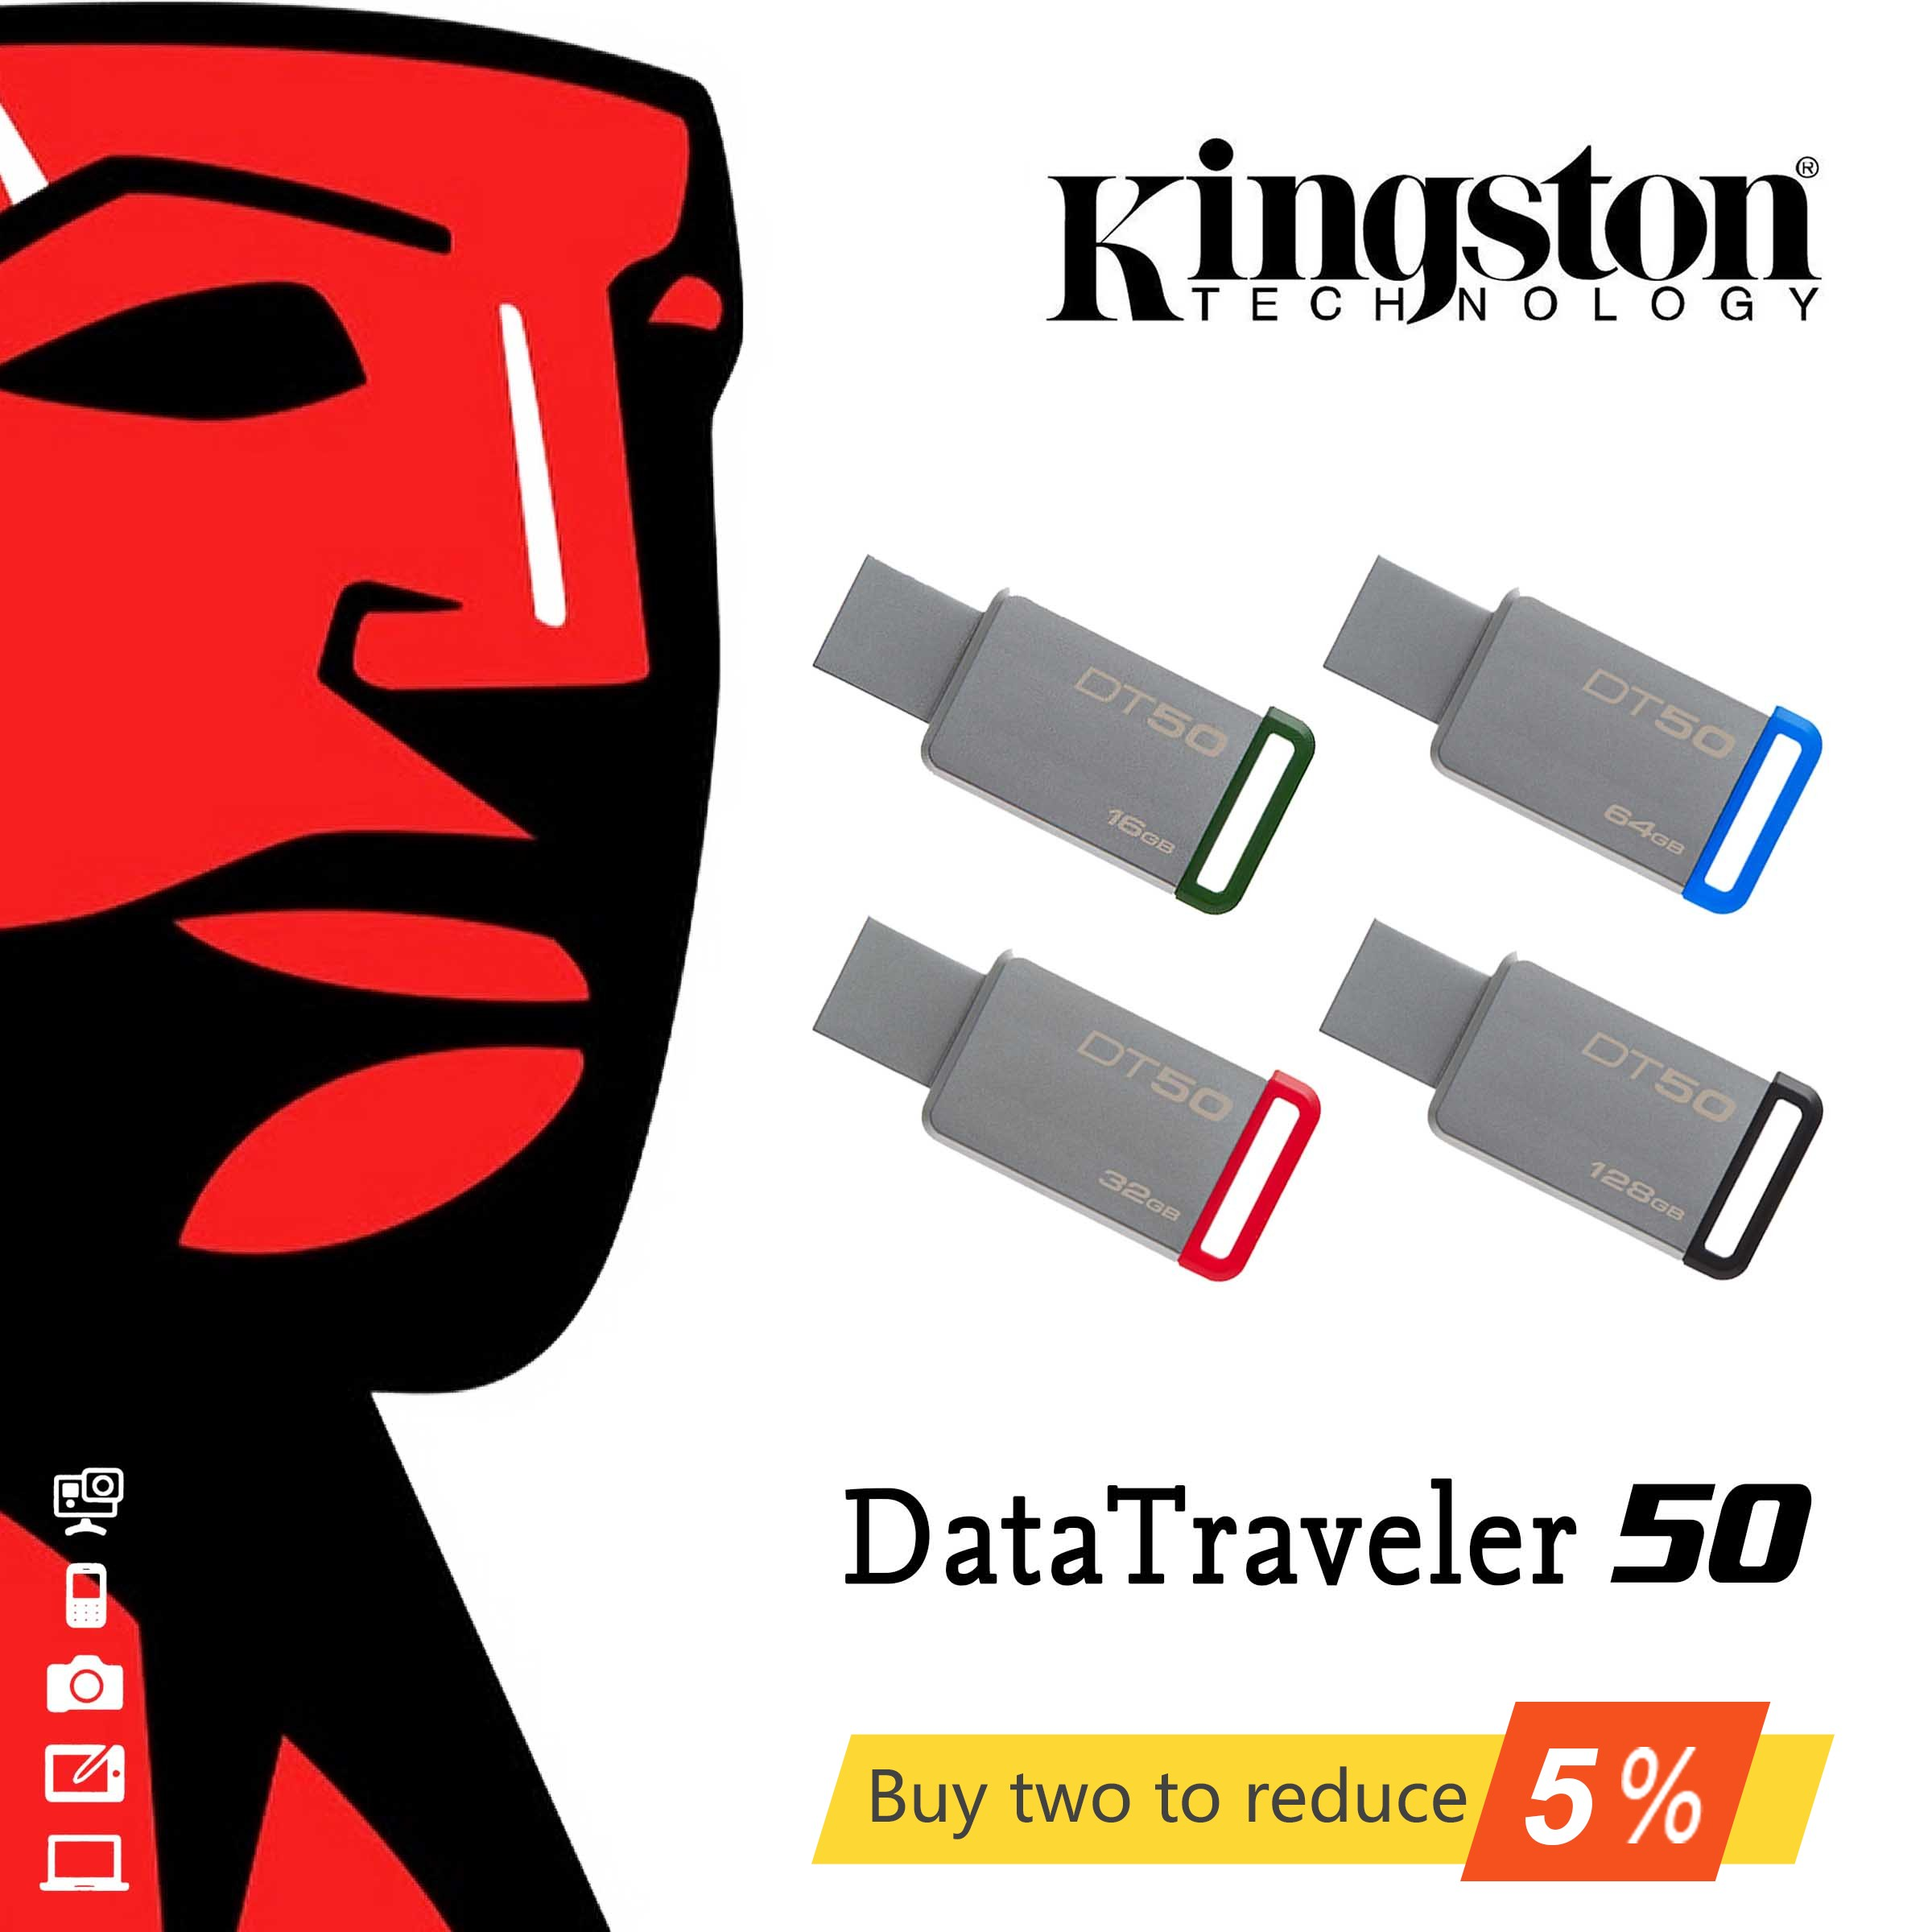 Stainless Steel DT50 Original Kingston USB 3.1 USB Flash Drives 32GB 64GB 128GB U Disk USB Pen Drive Stick 16 32 64 GB Pendrives